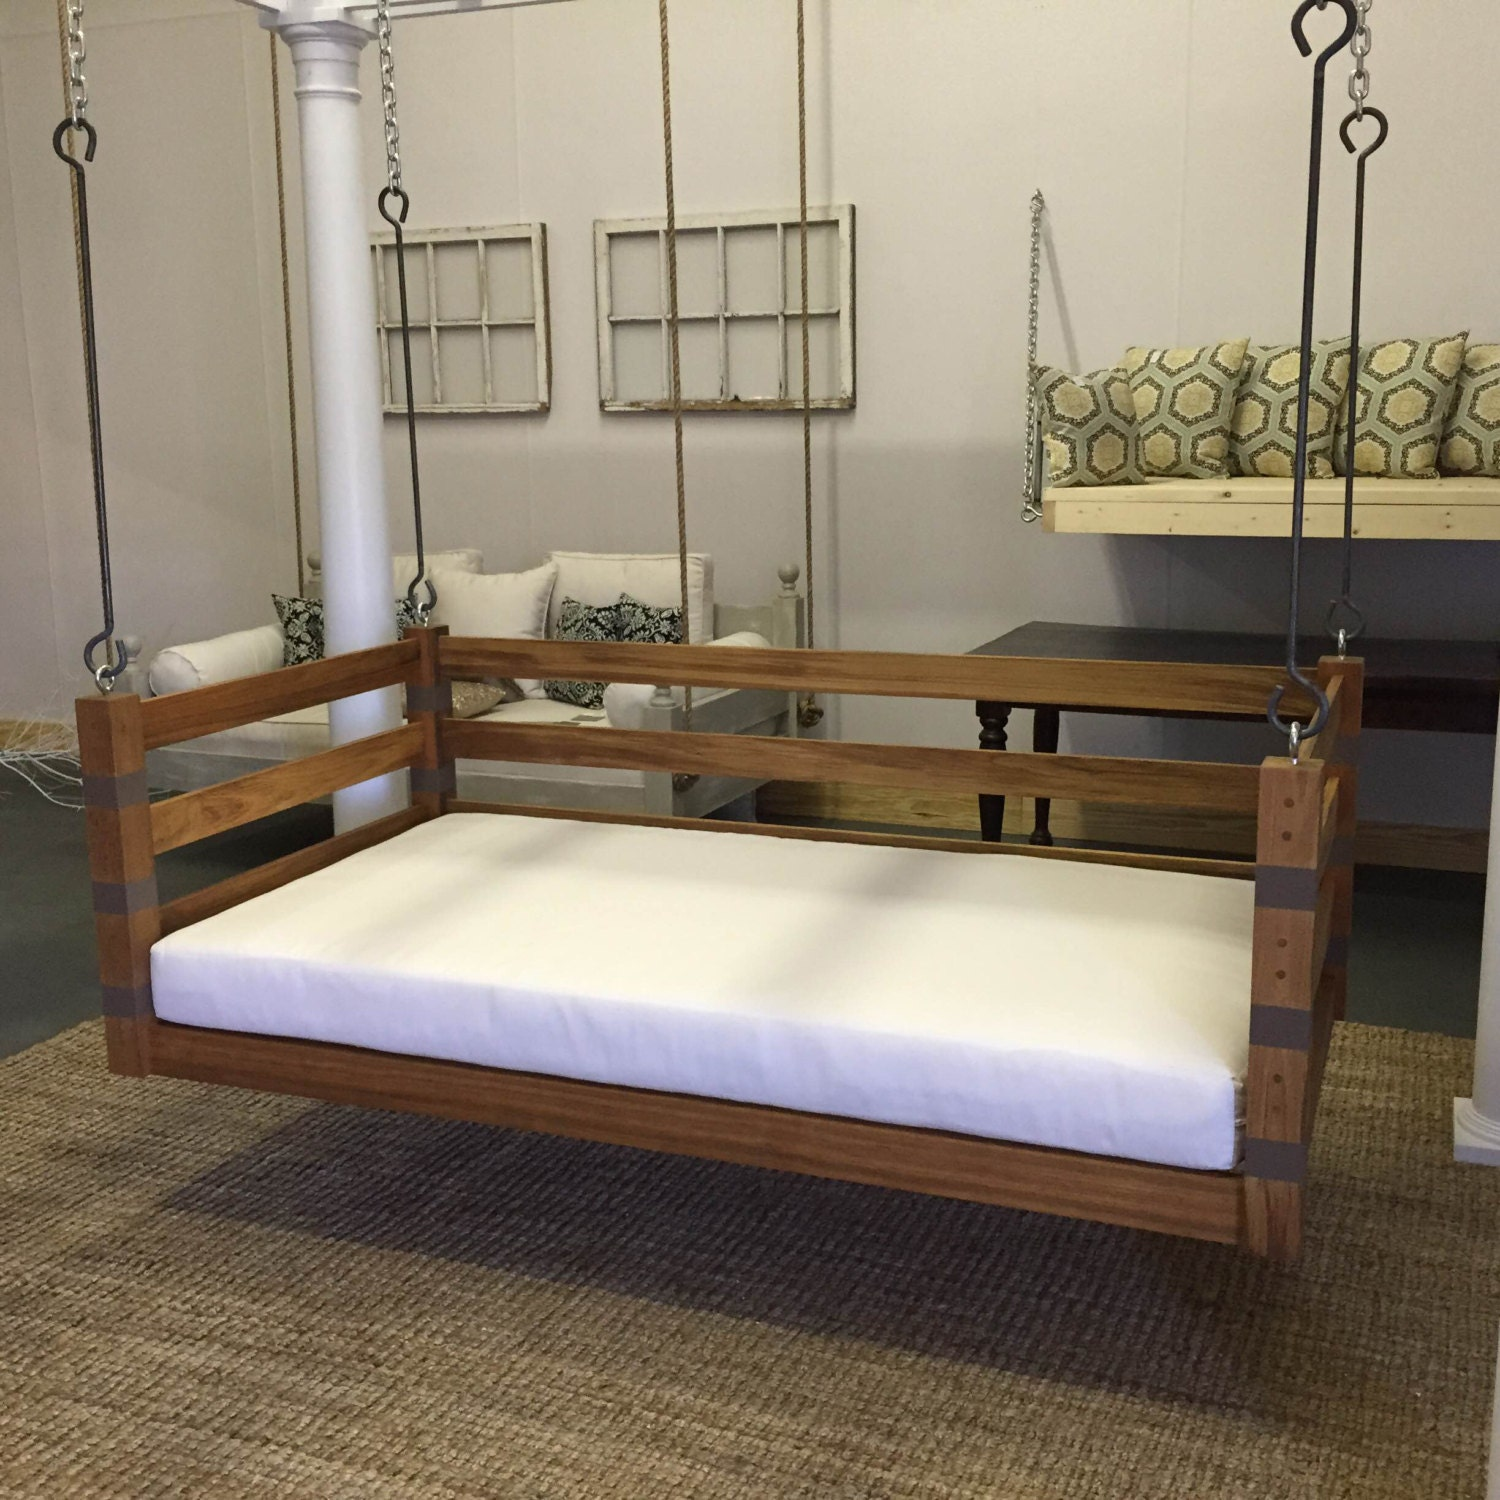 Porch Swing The Ion Swing Bed Free Shipping